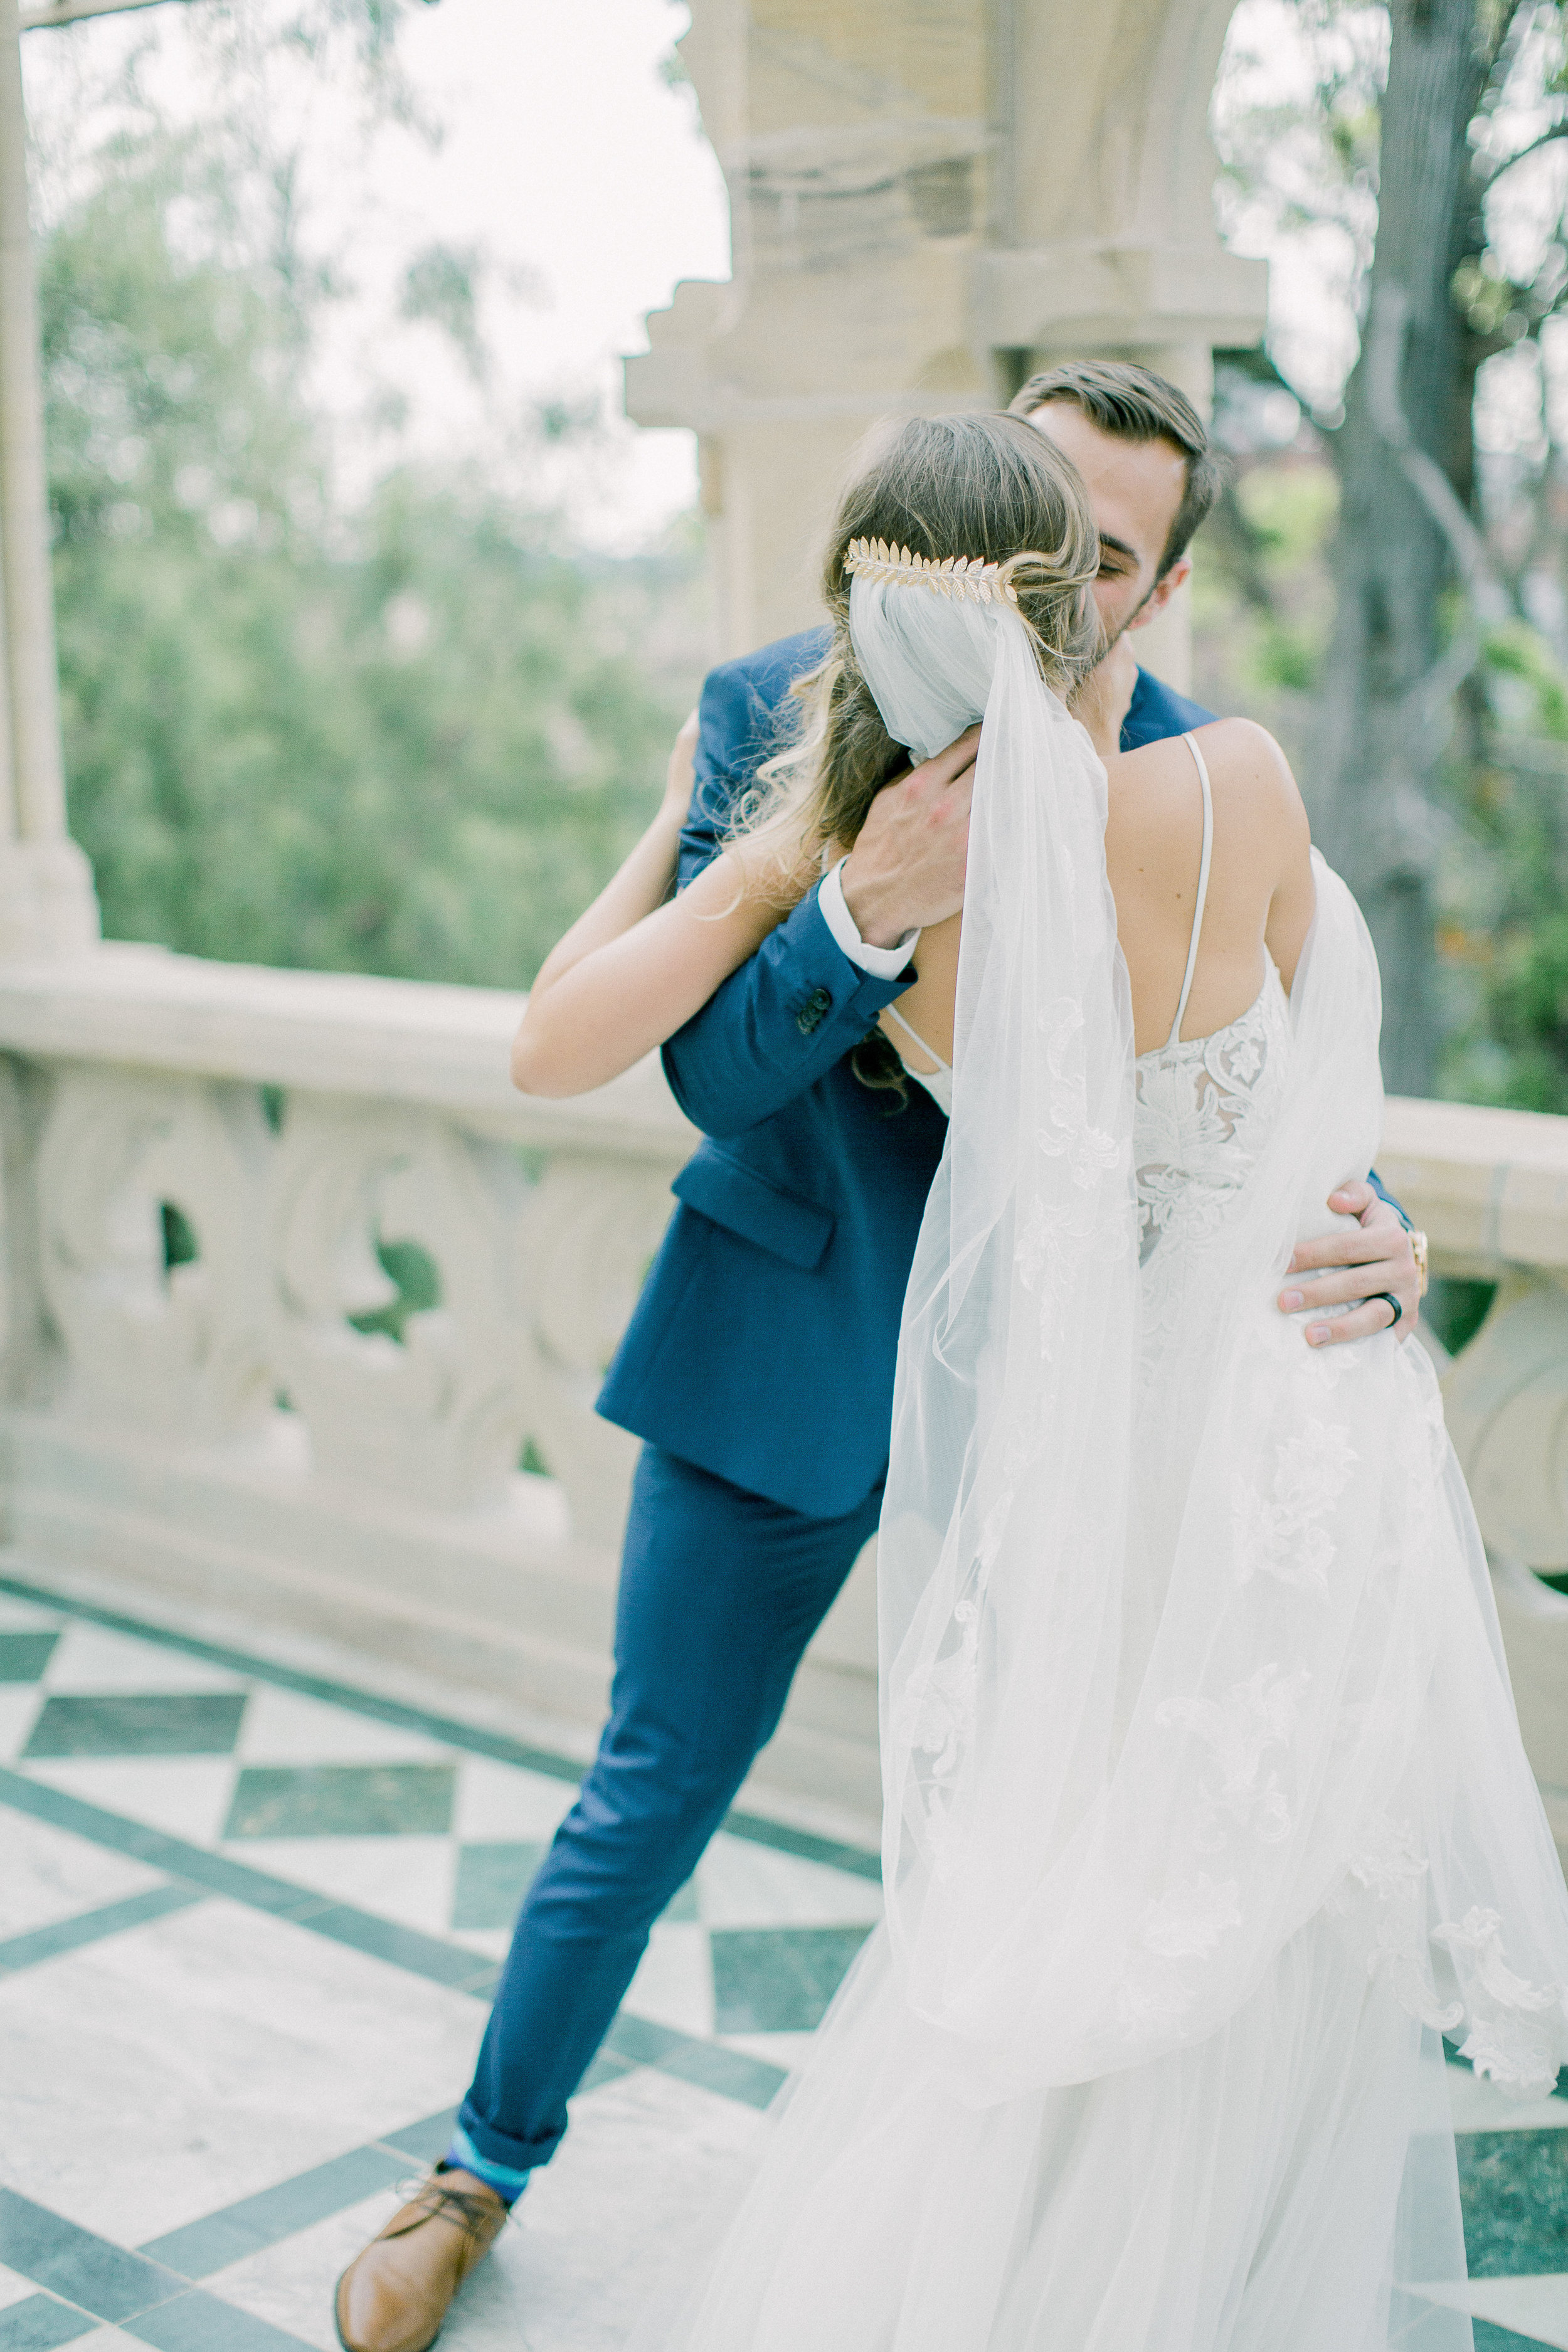 South africa wedding photographer clareece smit photography72.jpg